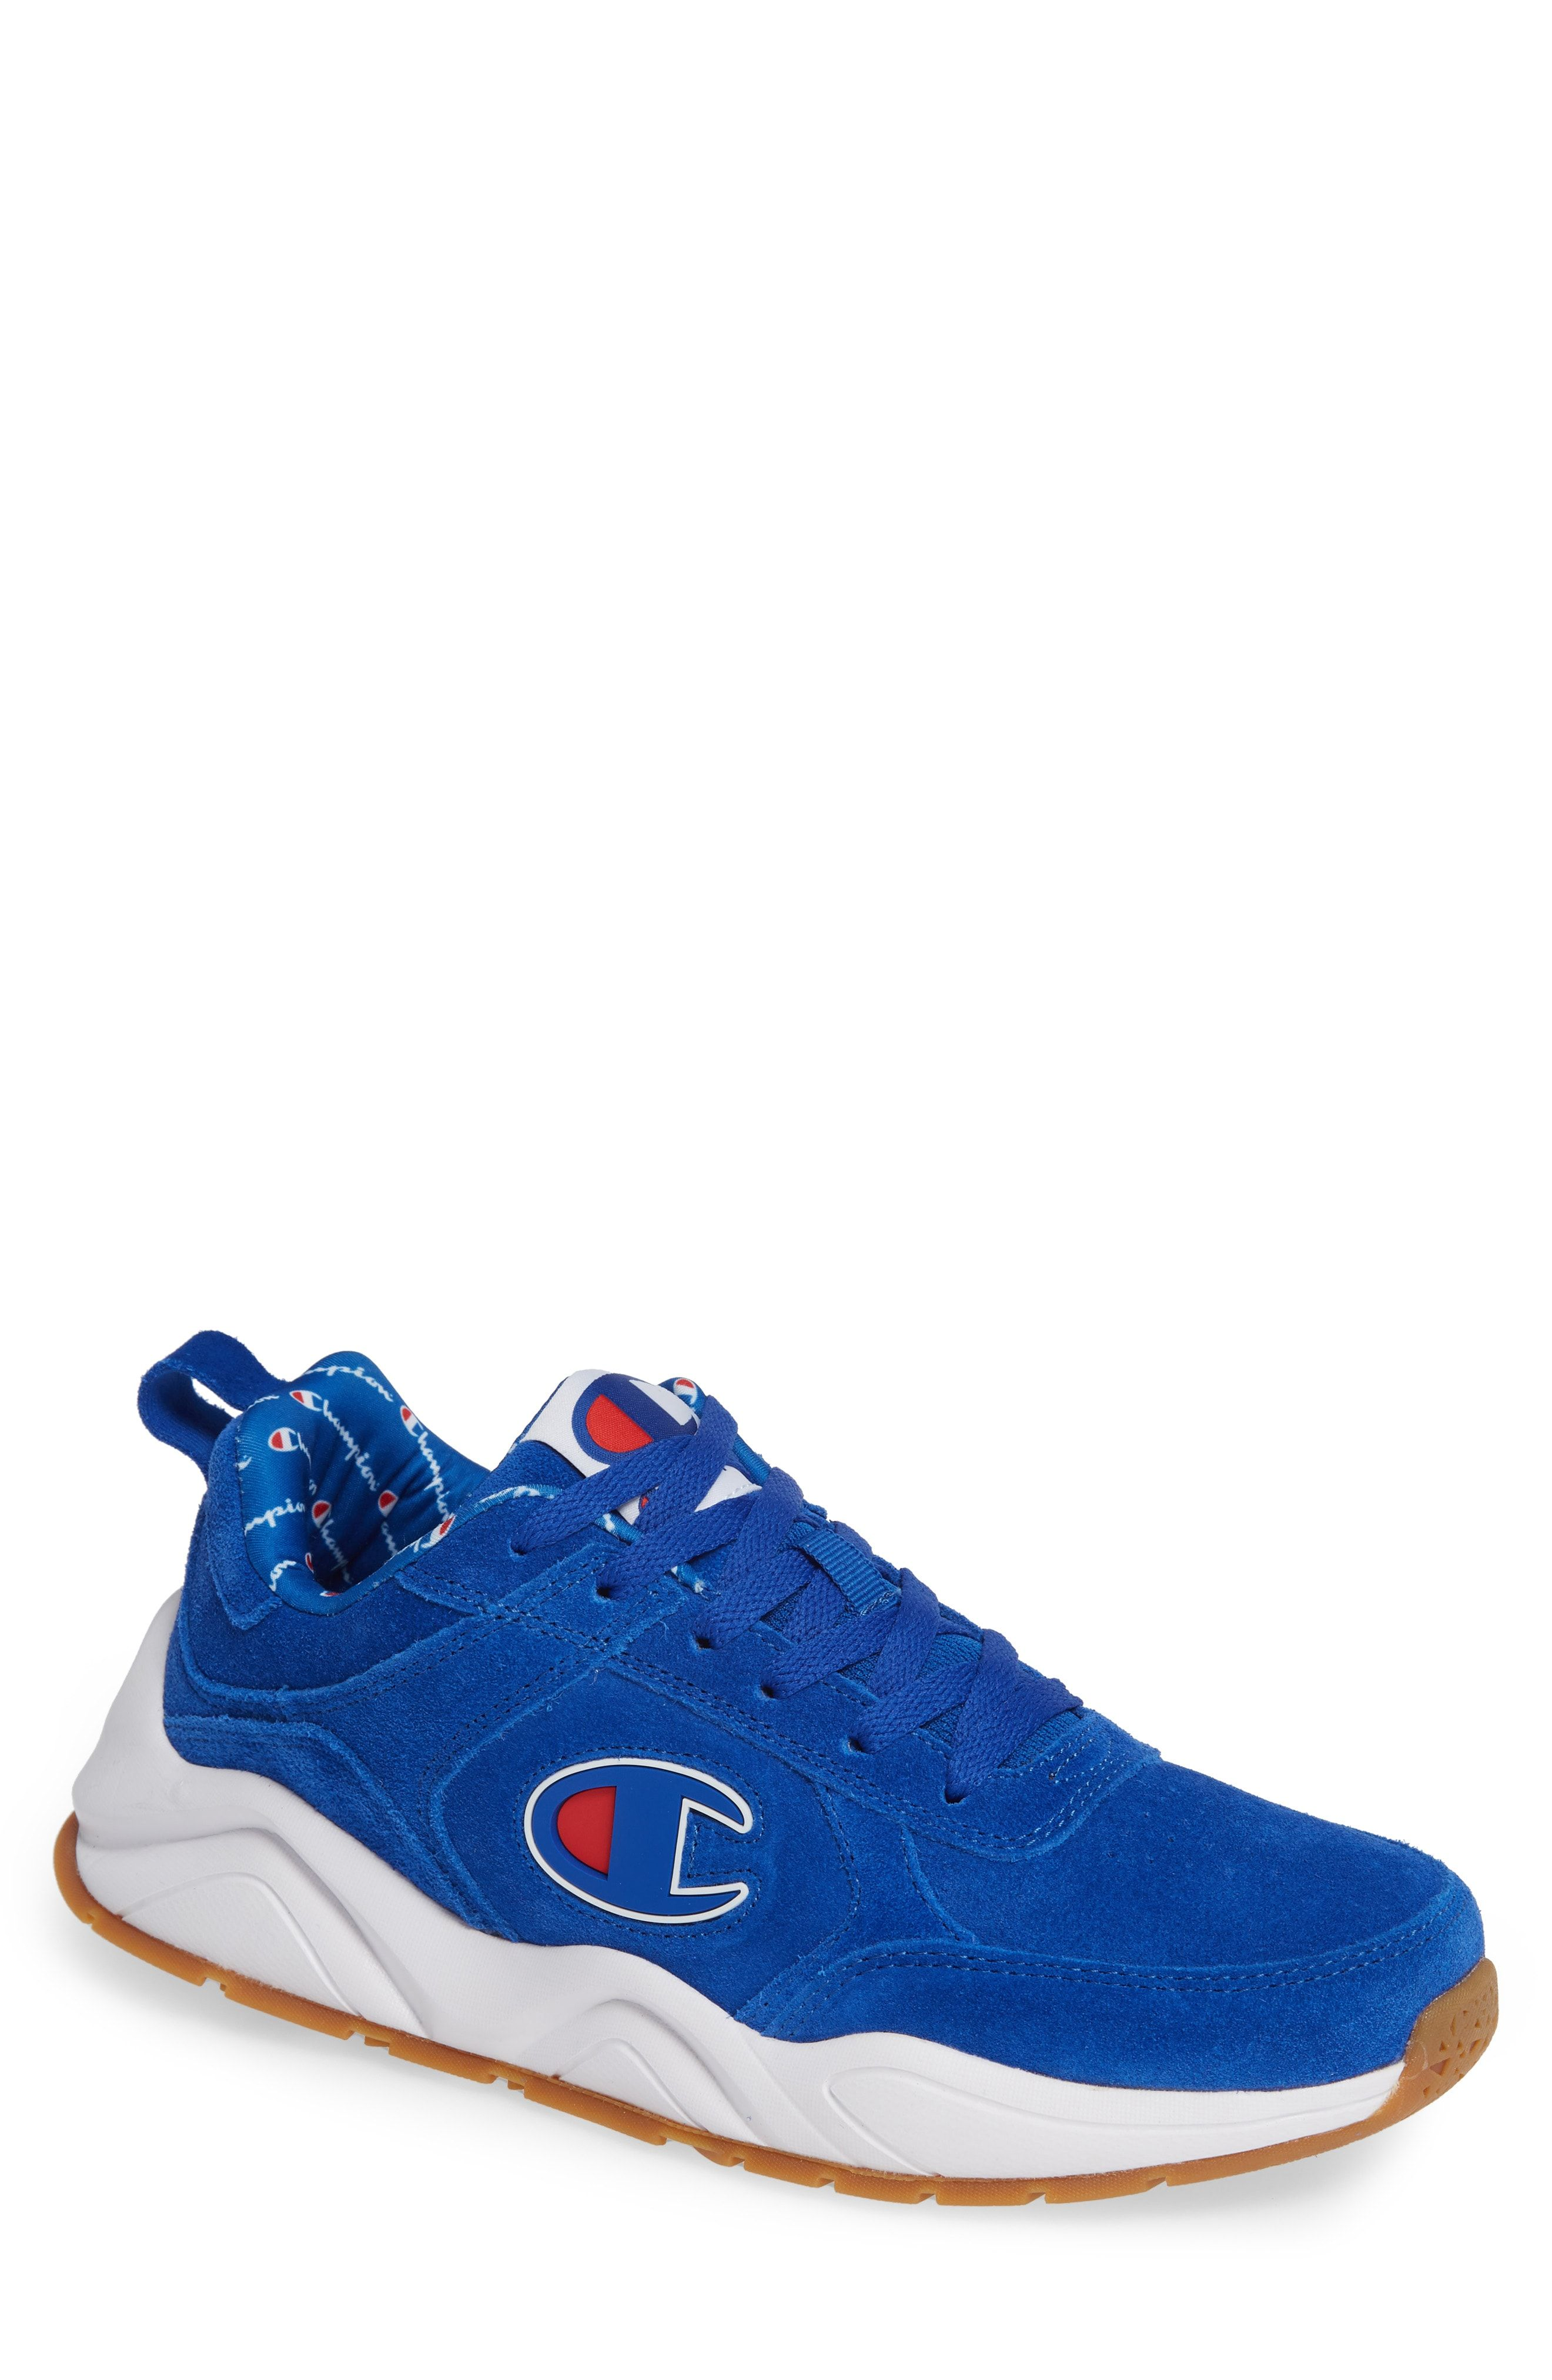 Champion shoes, Sneakers, Blue suede